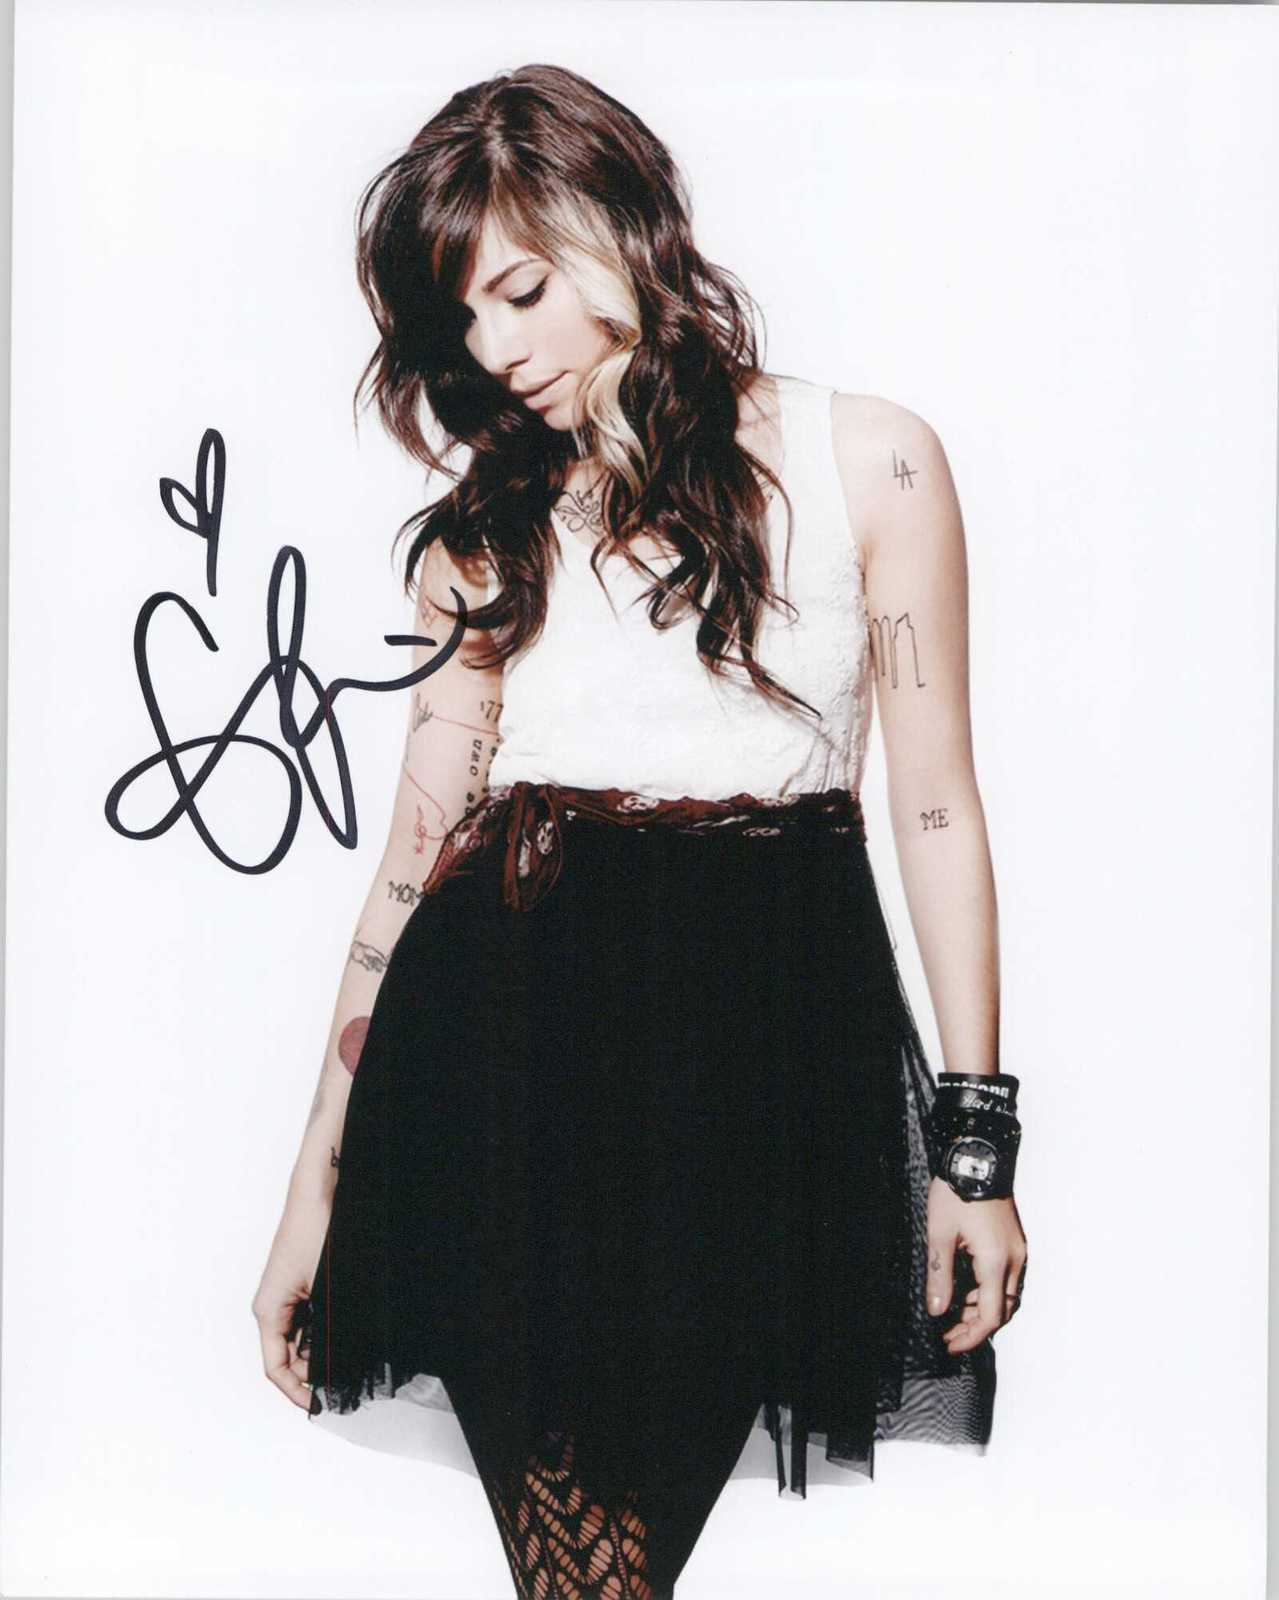 Primary image for Christina Perri Signed Autographed Glossy 8x10 Photo